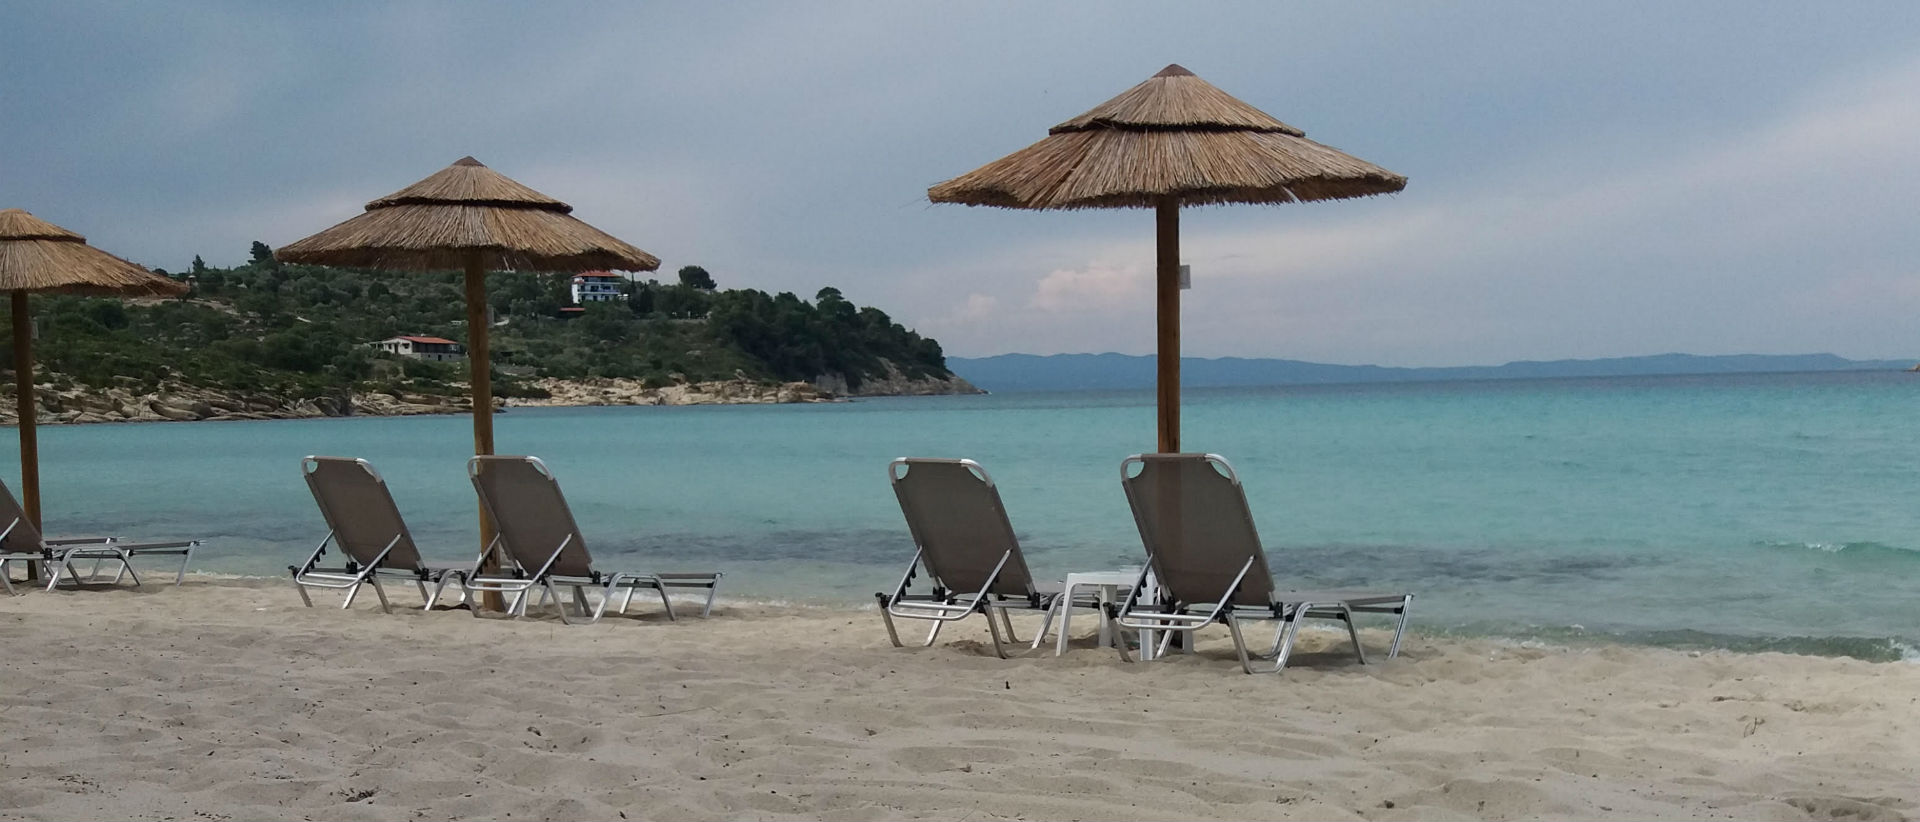 The sea and the sunset of Lagonisi Beach captivate every visitor.